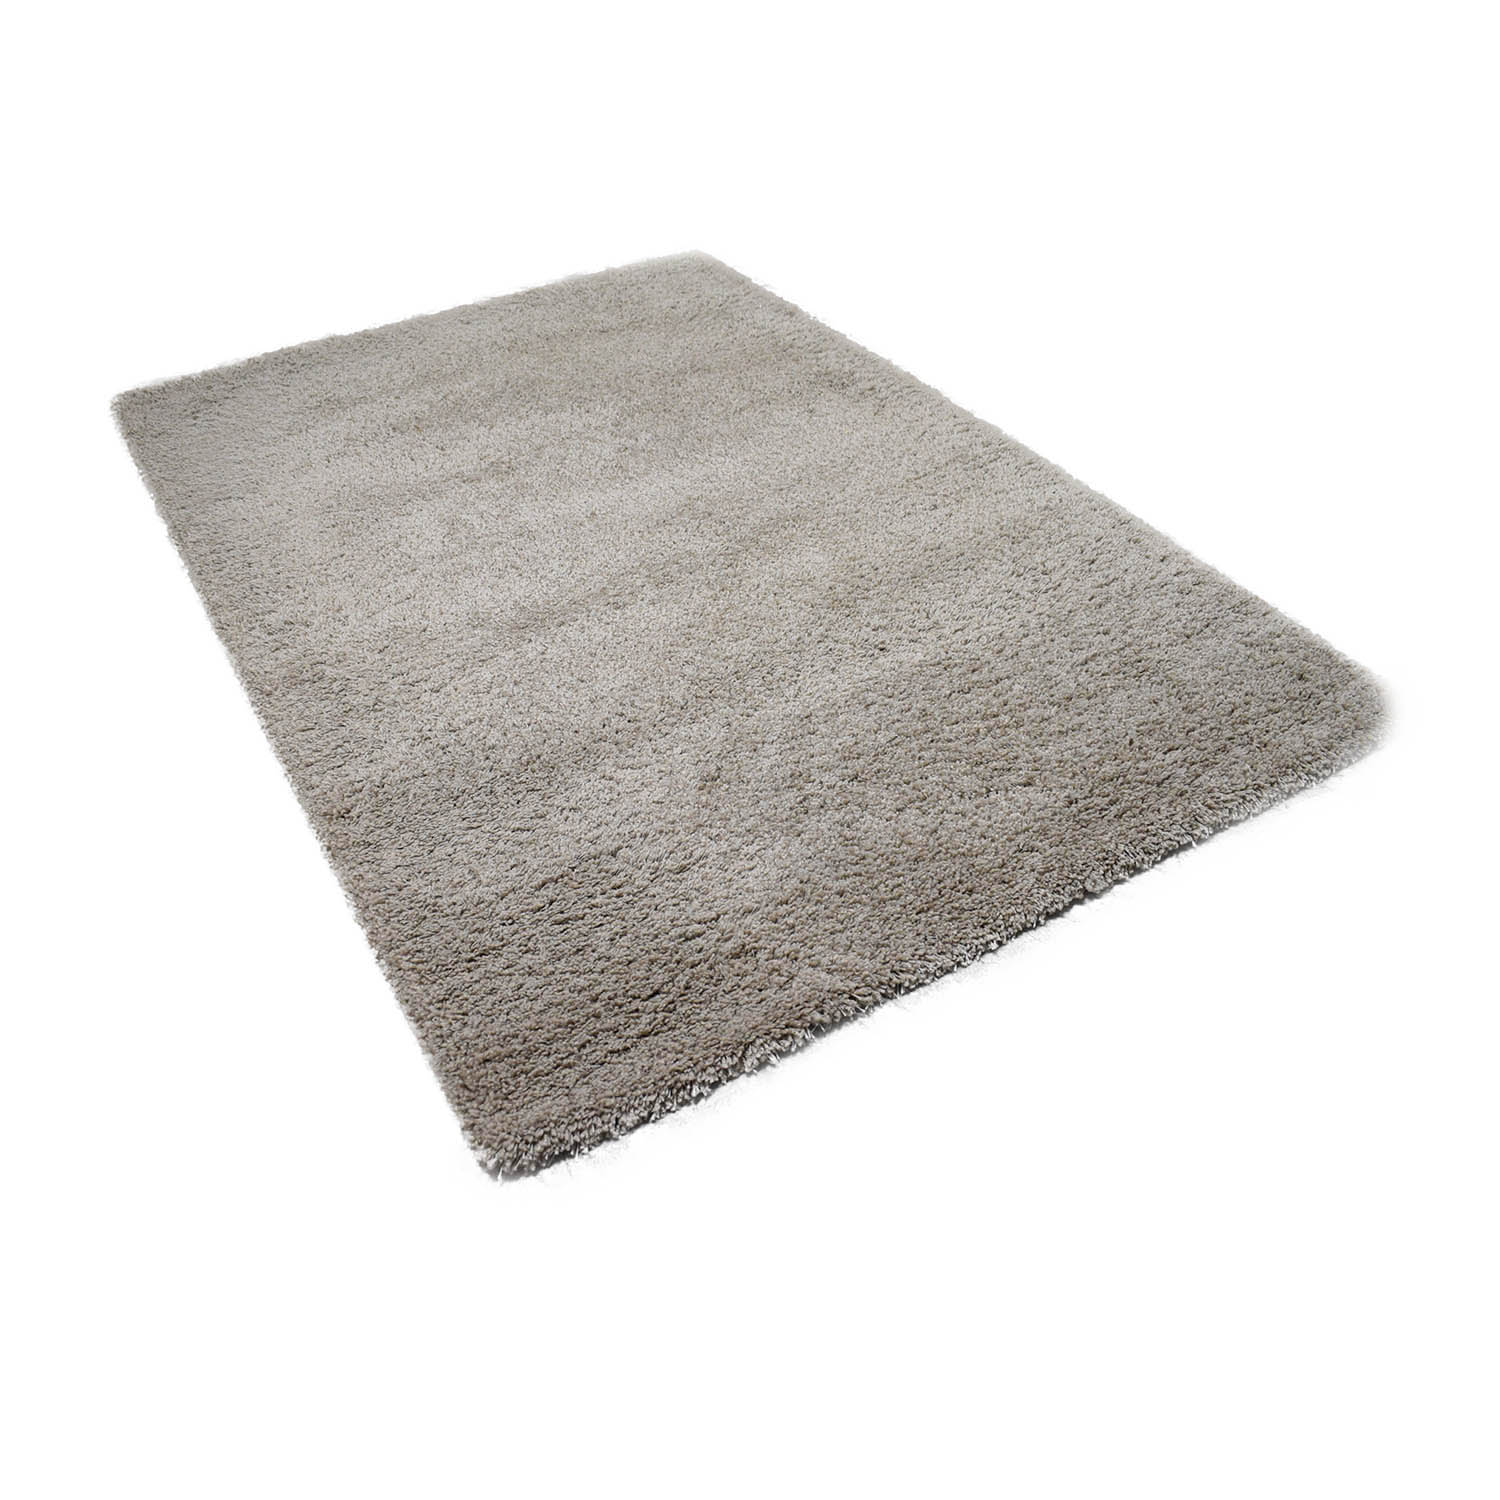 Crate & Barrel Crate & Barrel Grey Shag Rug Rugs